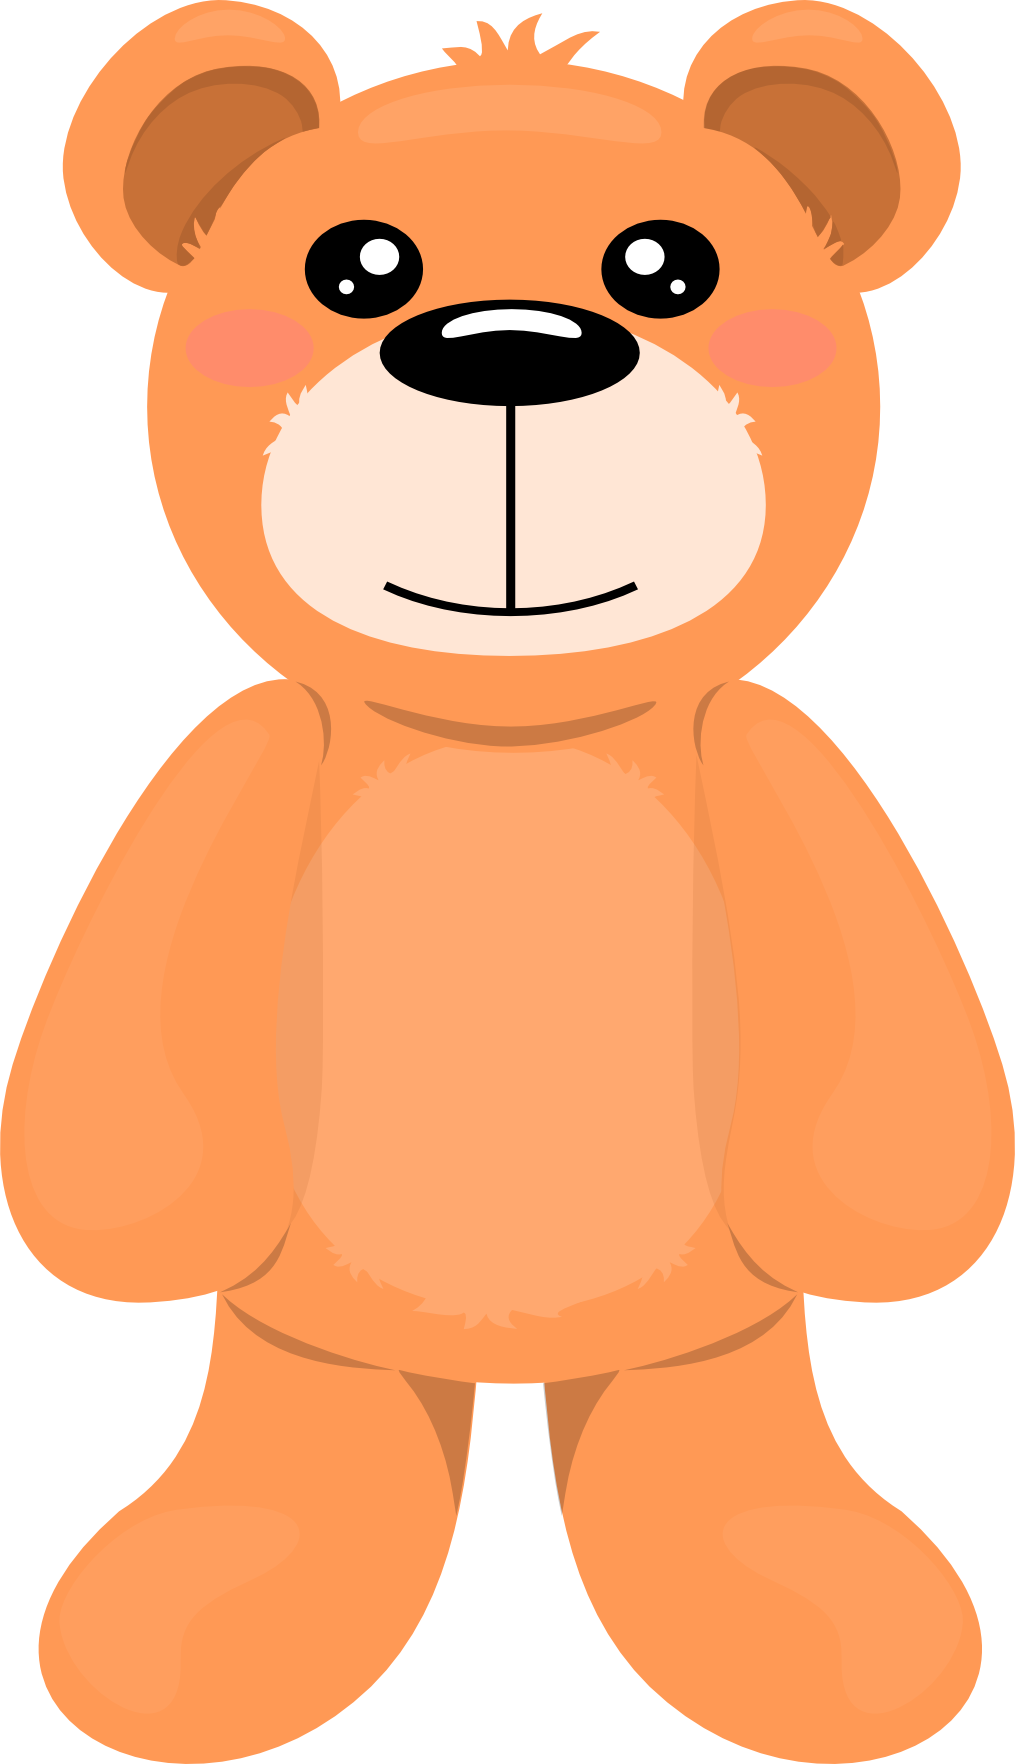 Bear clip art white background. Teddy all for you